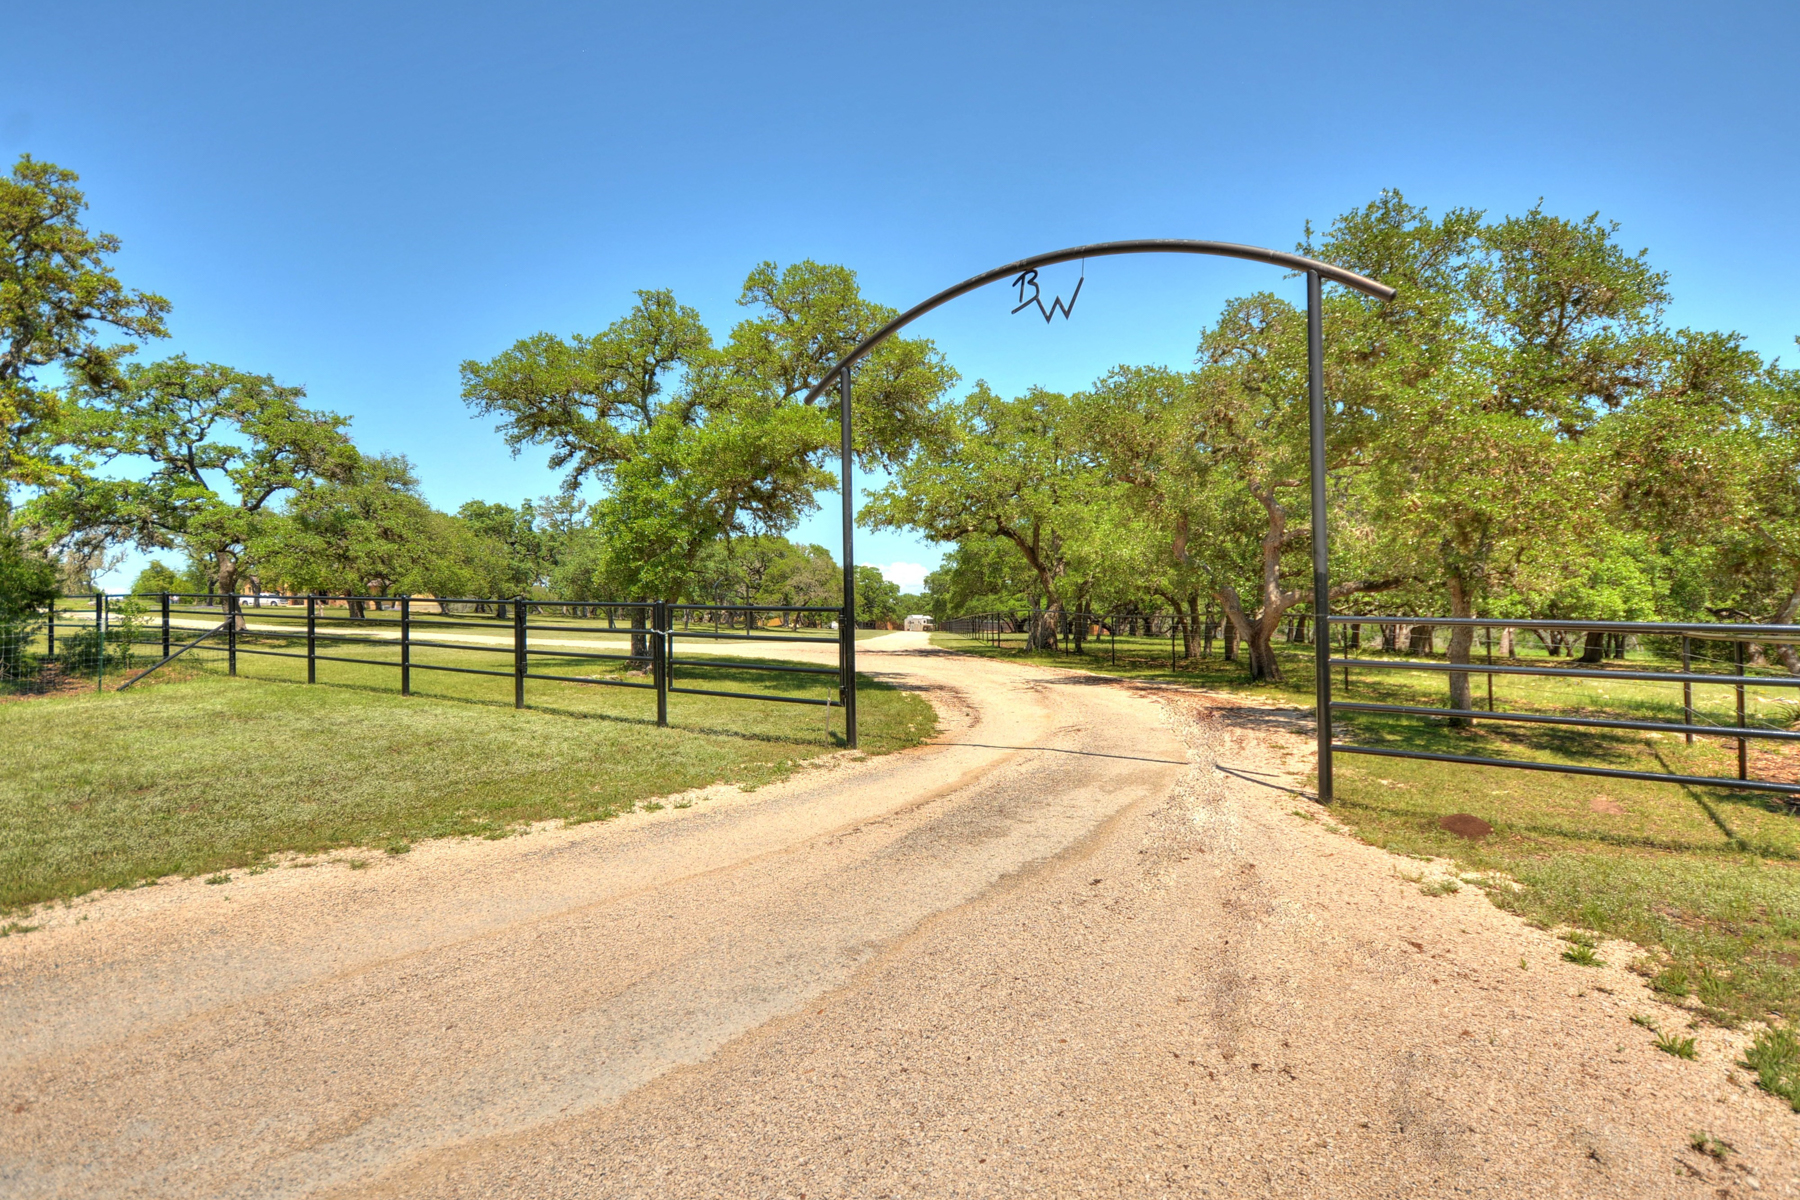 Additional photo for property listing at 32.32+/- Acre Premium Horse Property 47 A Pfeiffer Rd Boerne, Texas 78006 Estados Unidos